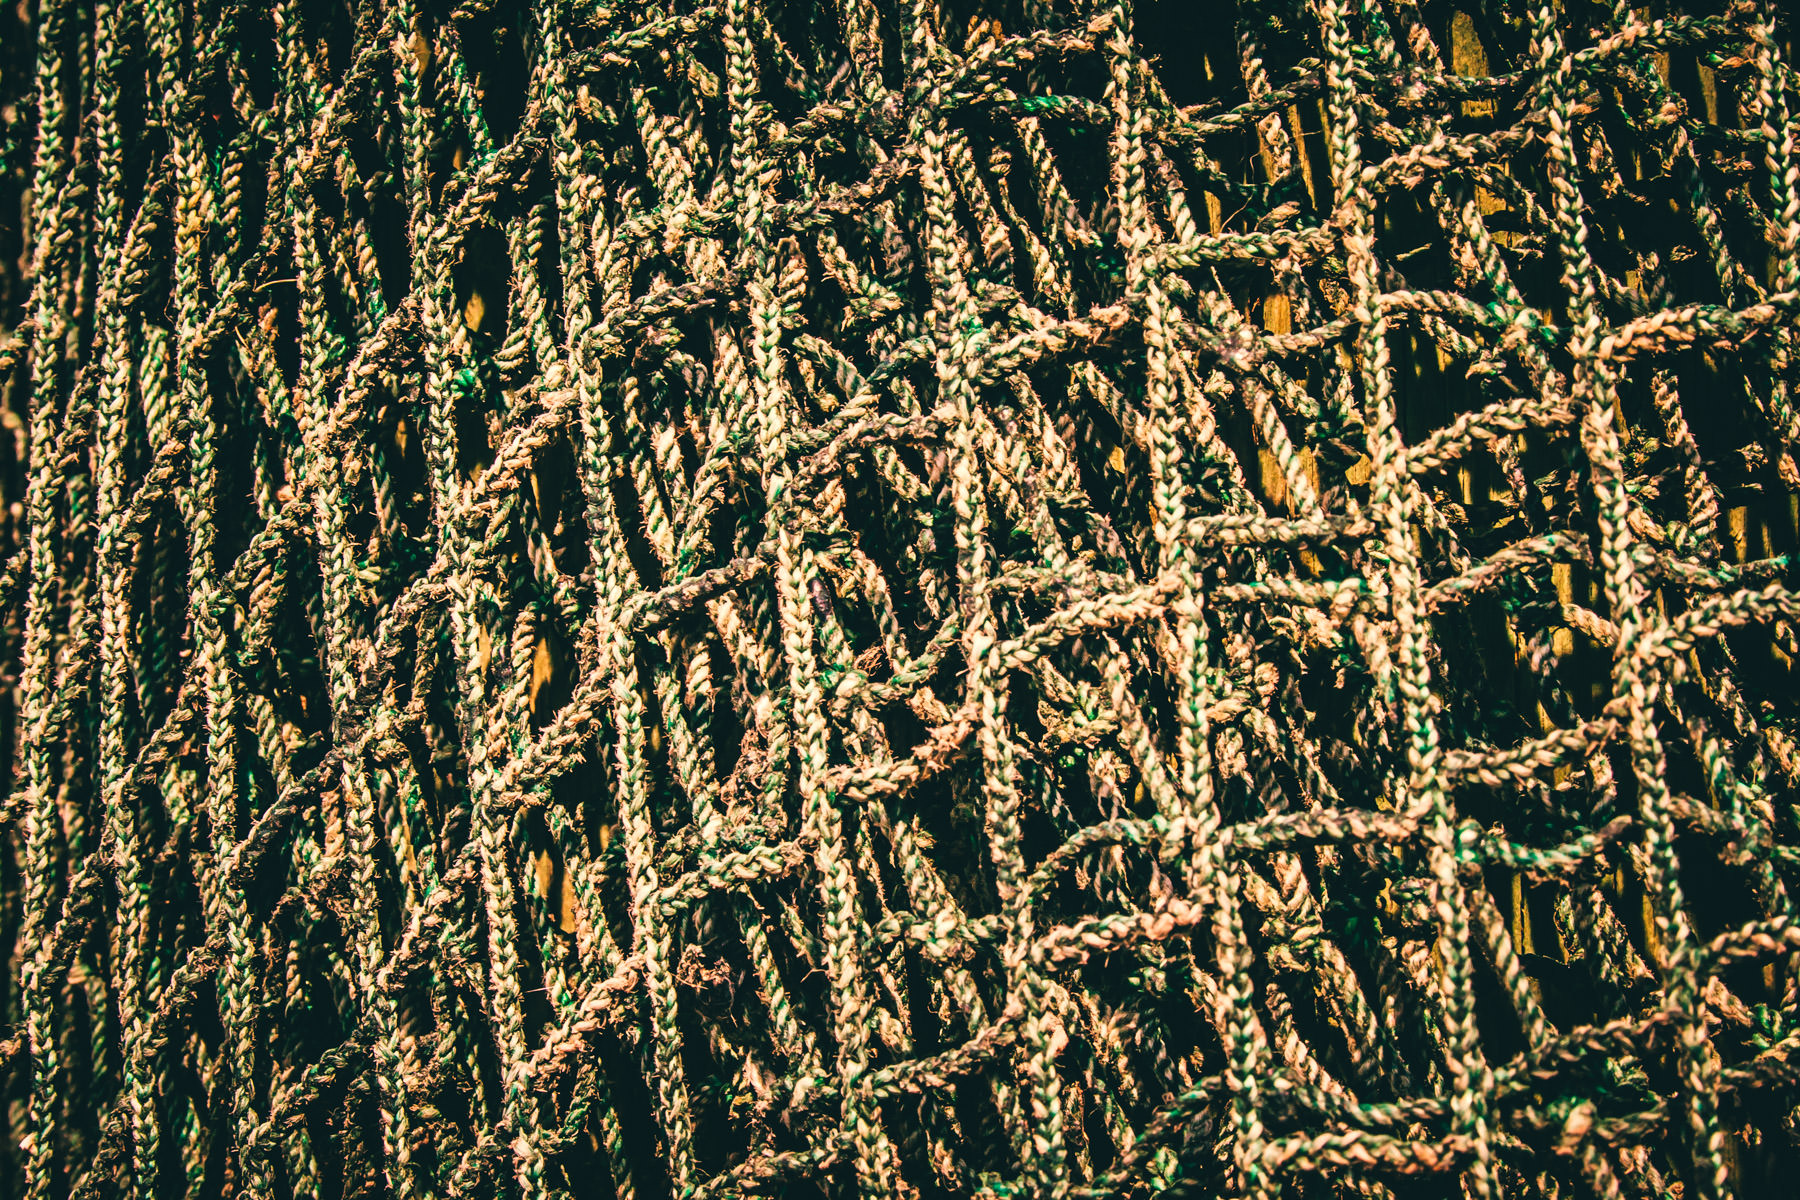 Detail of a fishing net in Port Isabel, Texas.